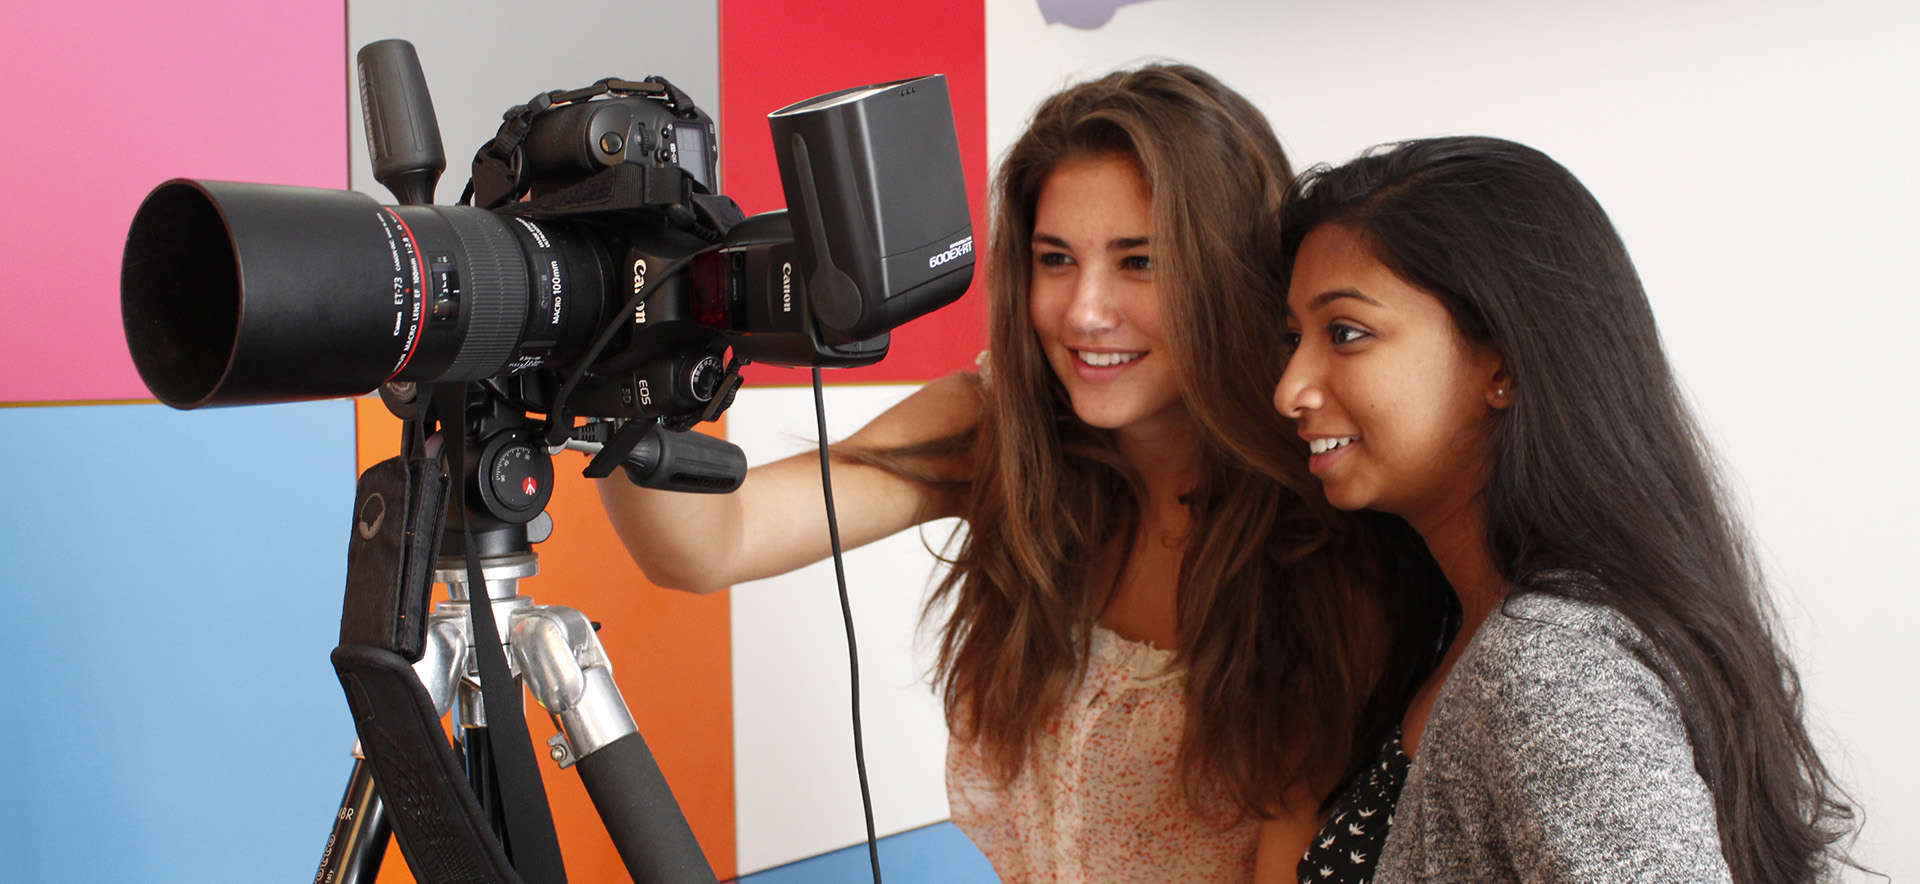 During their summer academic program, Oxbridge students are practicing photography with professional equipment